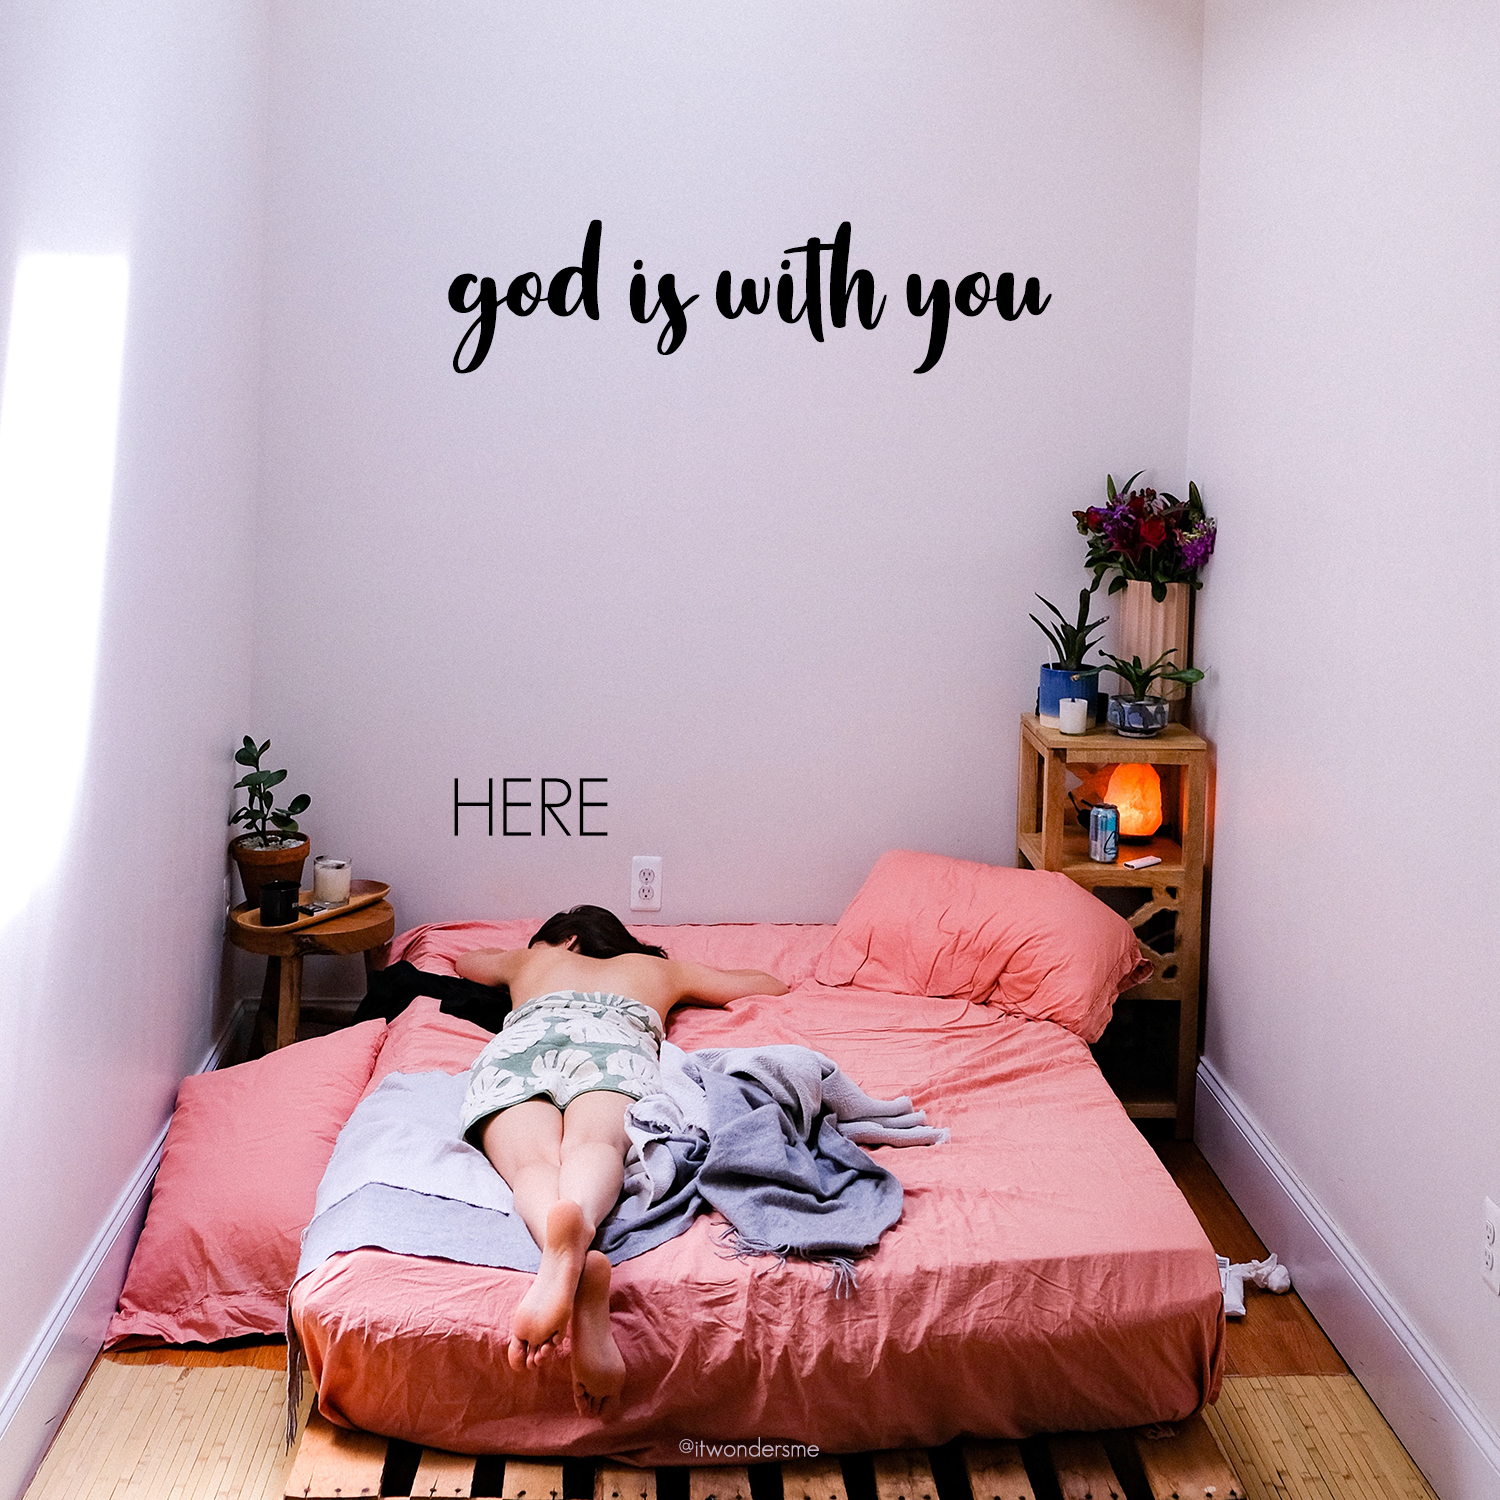 God is with you here